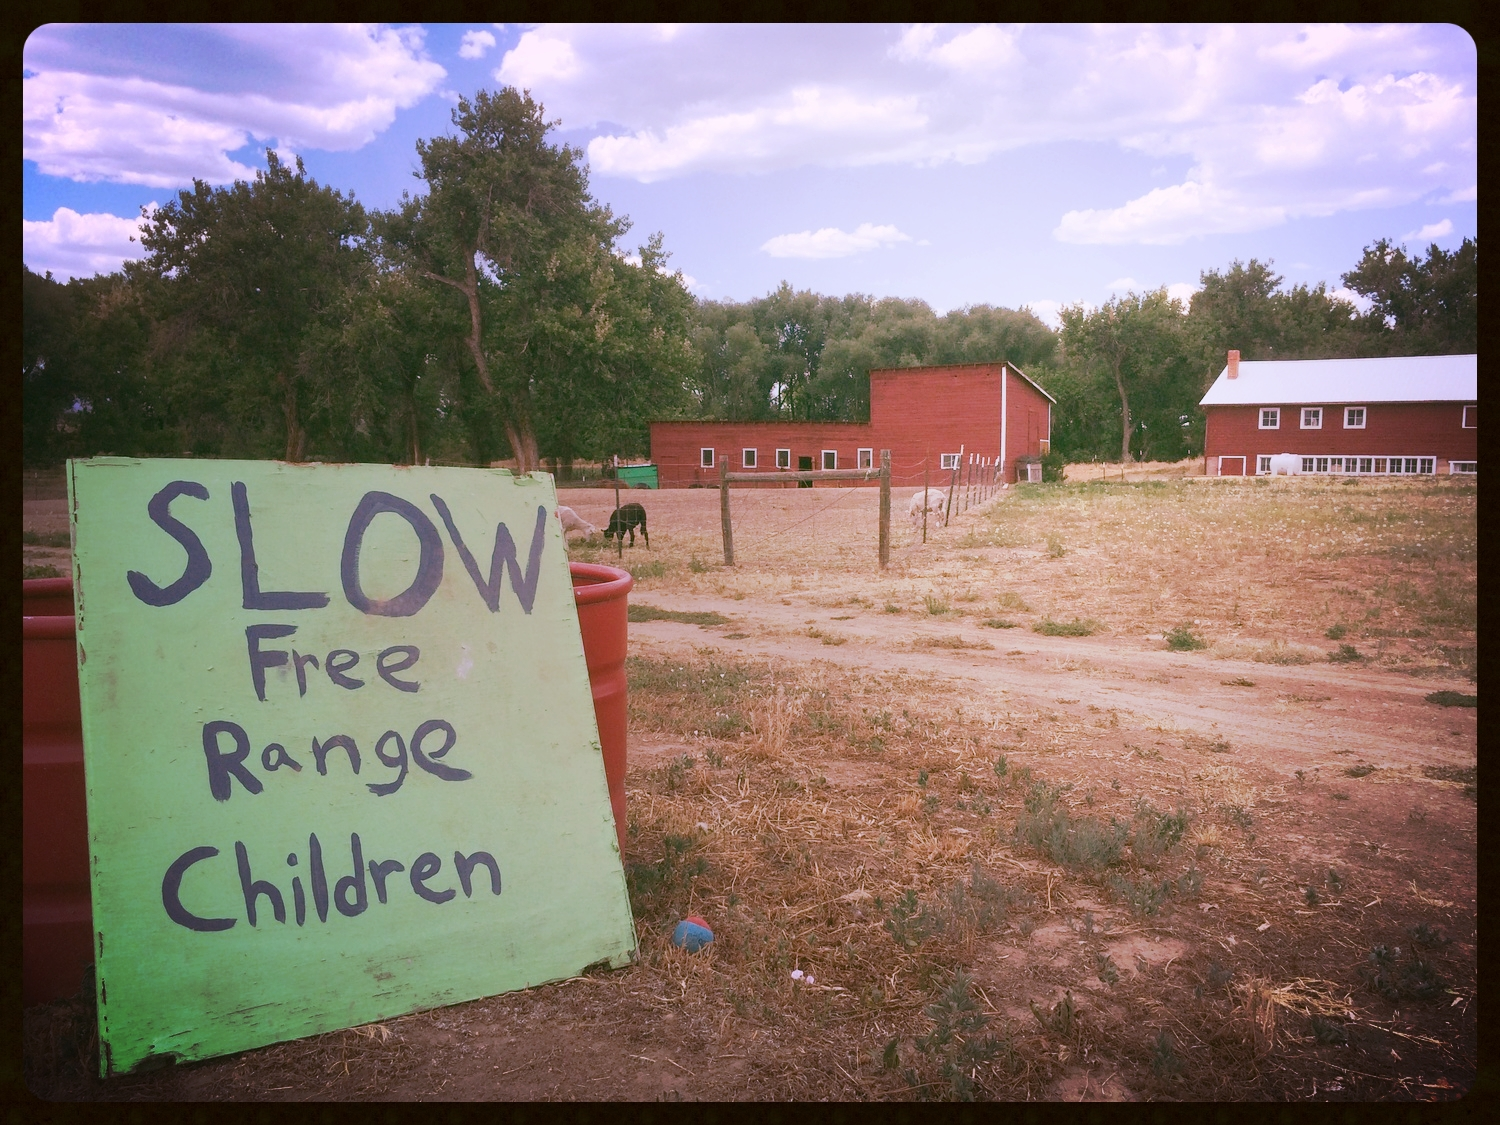 This humorous sign greets visitors at the entrance of Ollin Farms, located at 8627 N. 95th St., in SW Longmont, Colo.